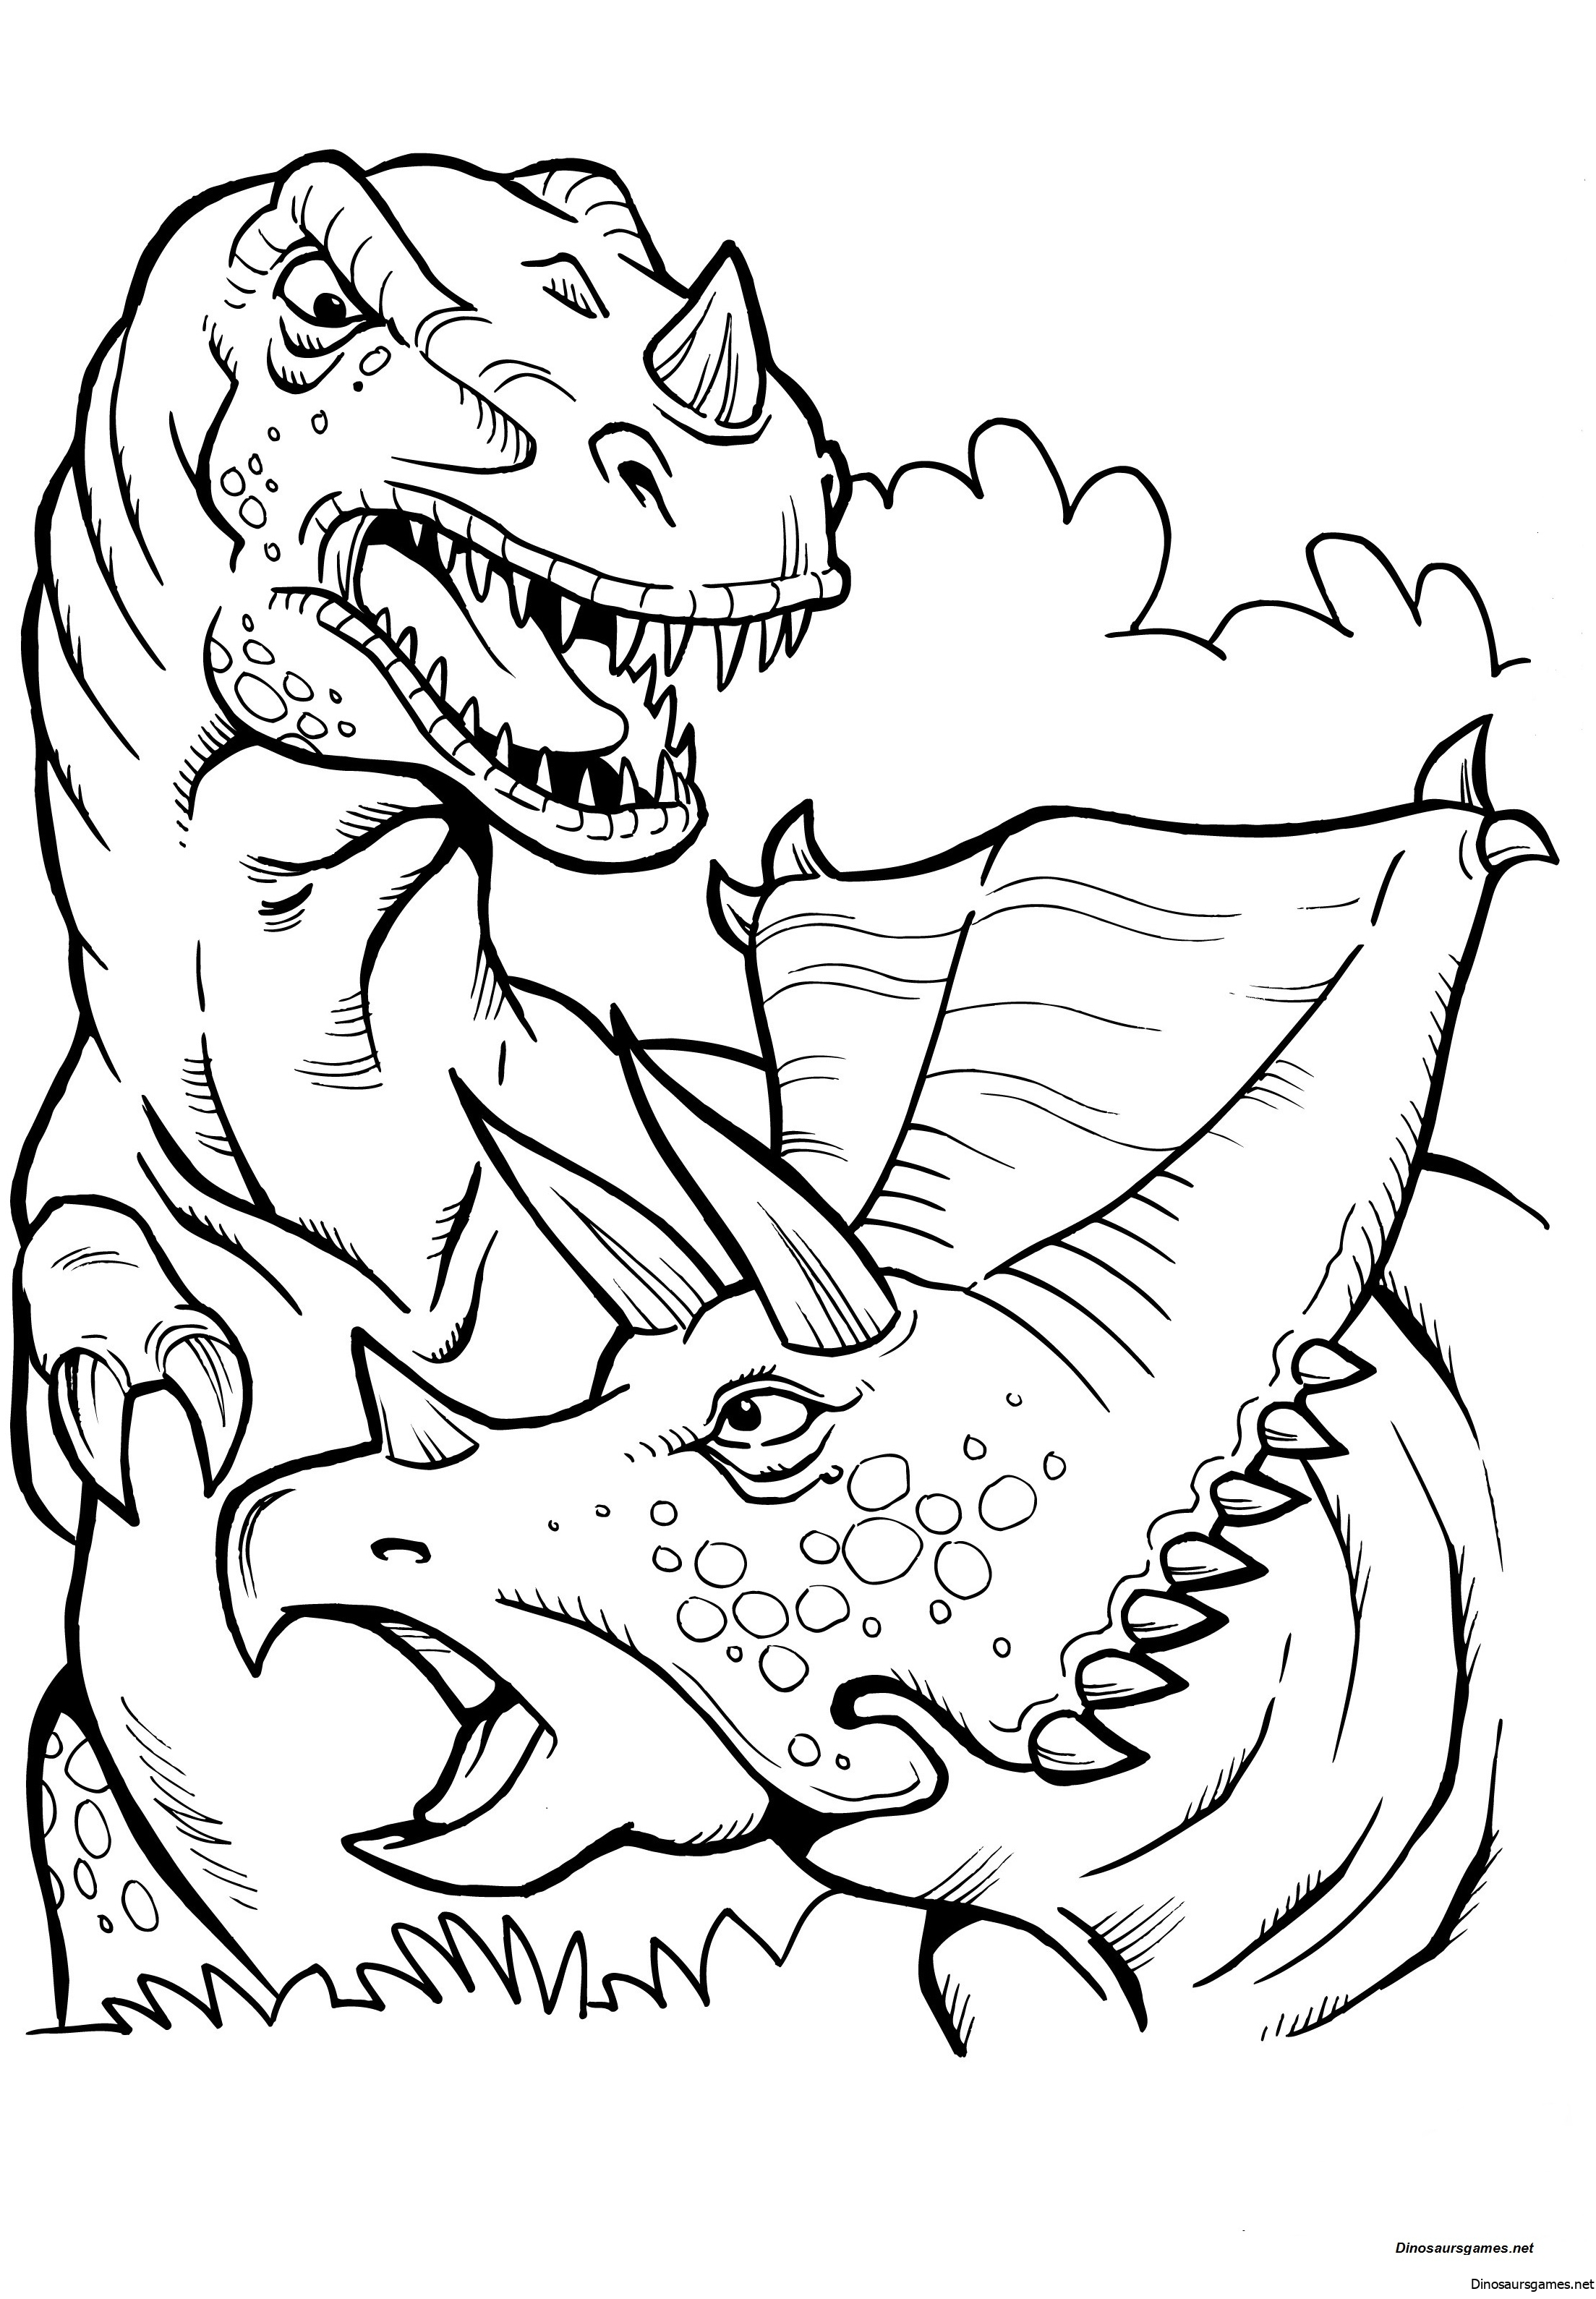 Battle T Rex Coloring Page